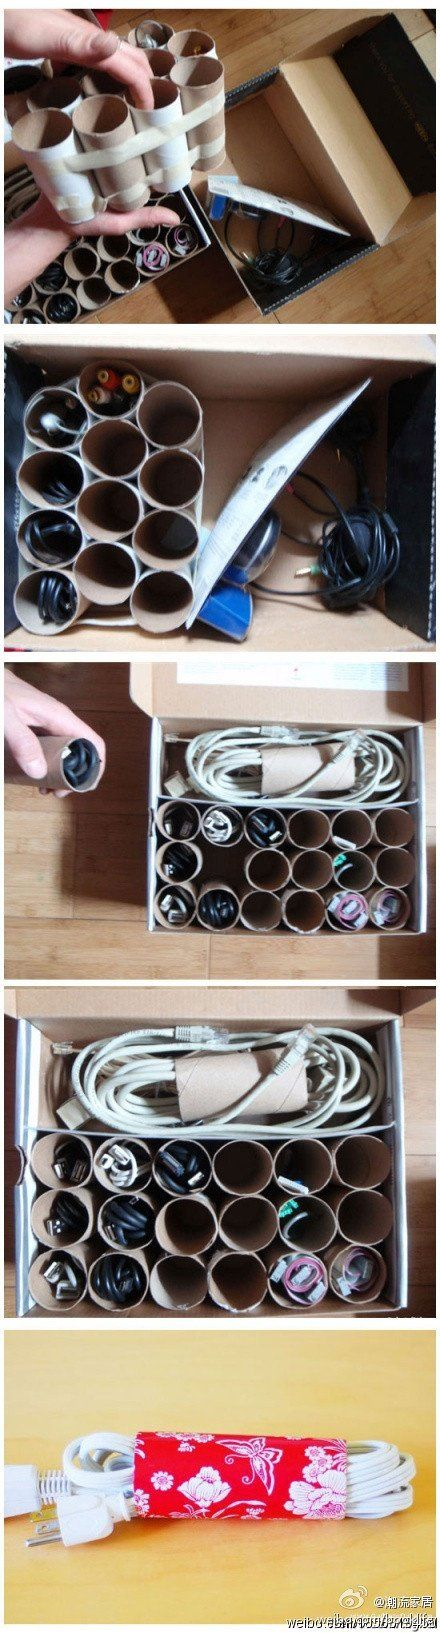 Toilet paper rolls to store small cords.